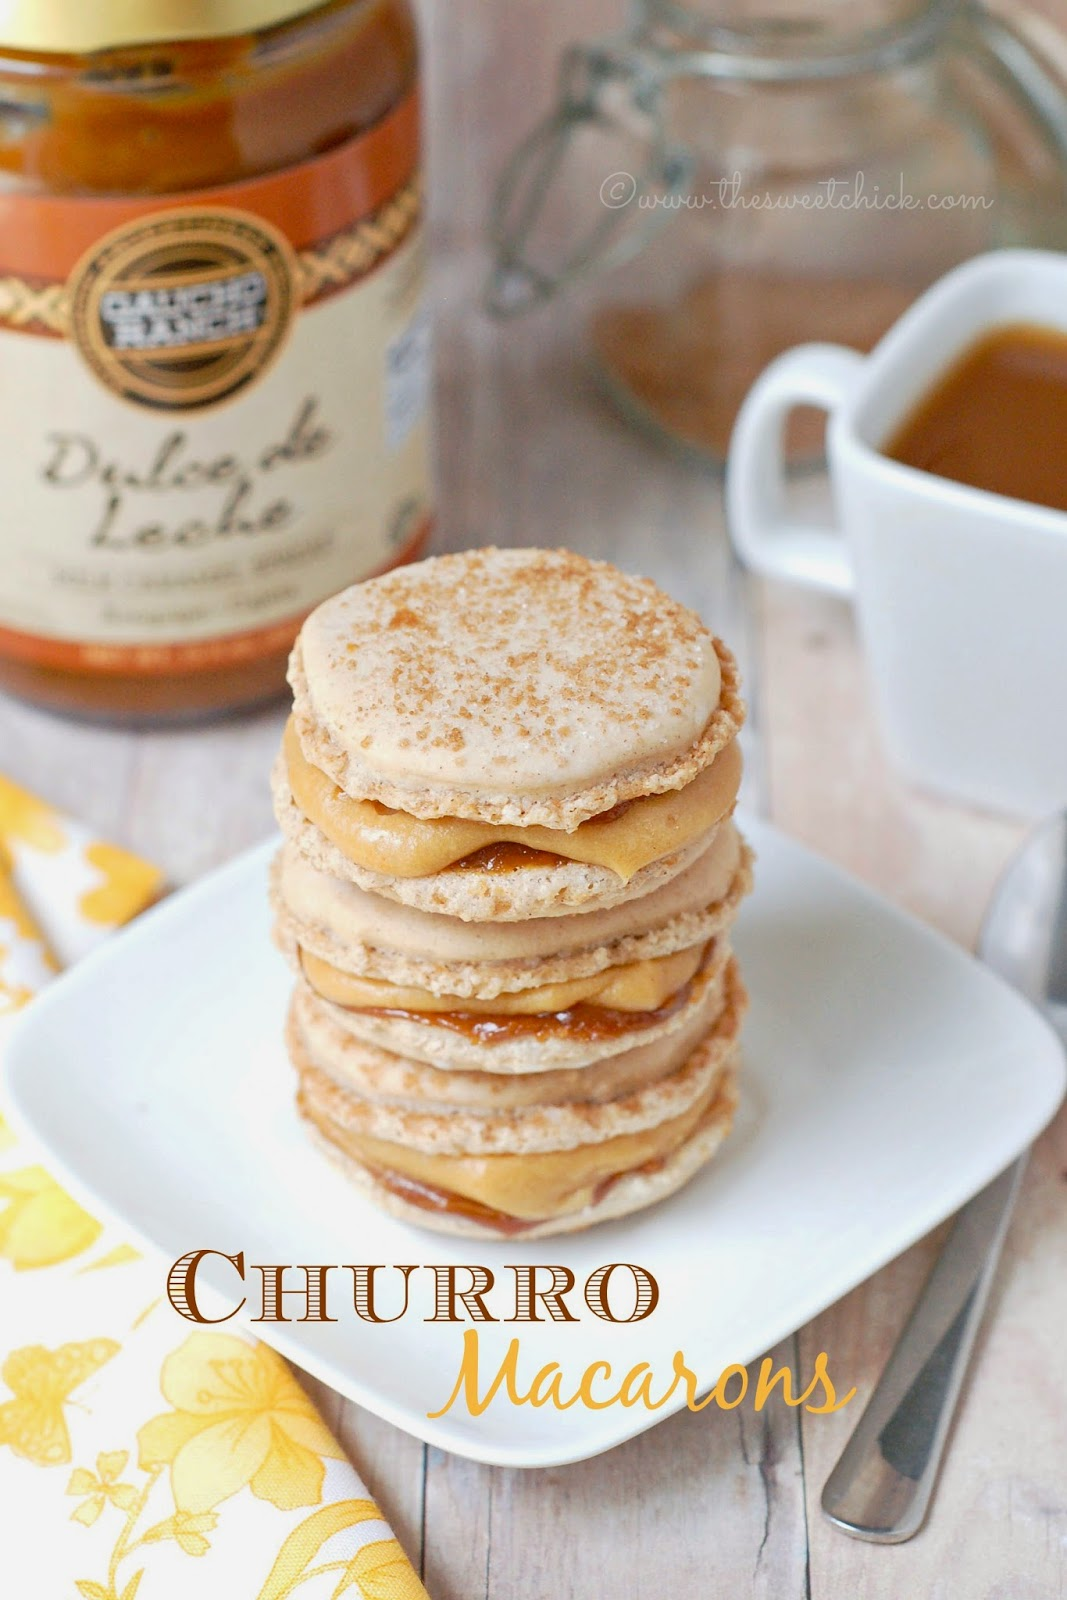 Churro Macarons - The Sweet Chick